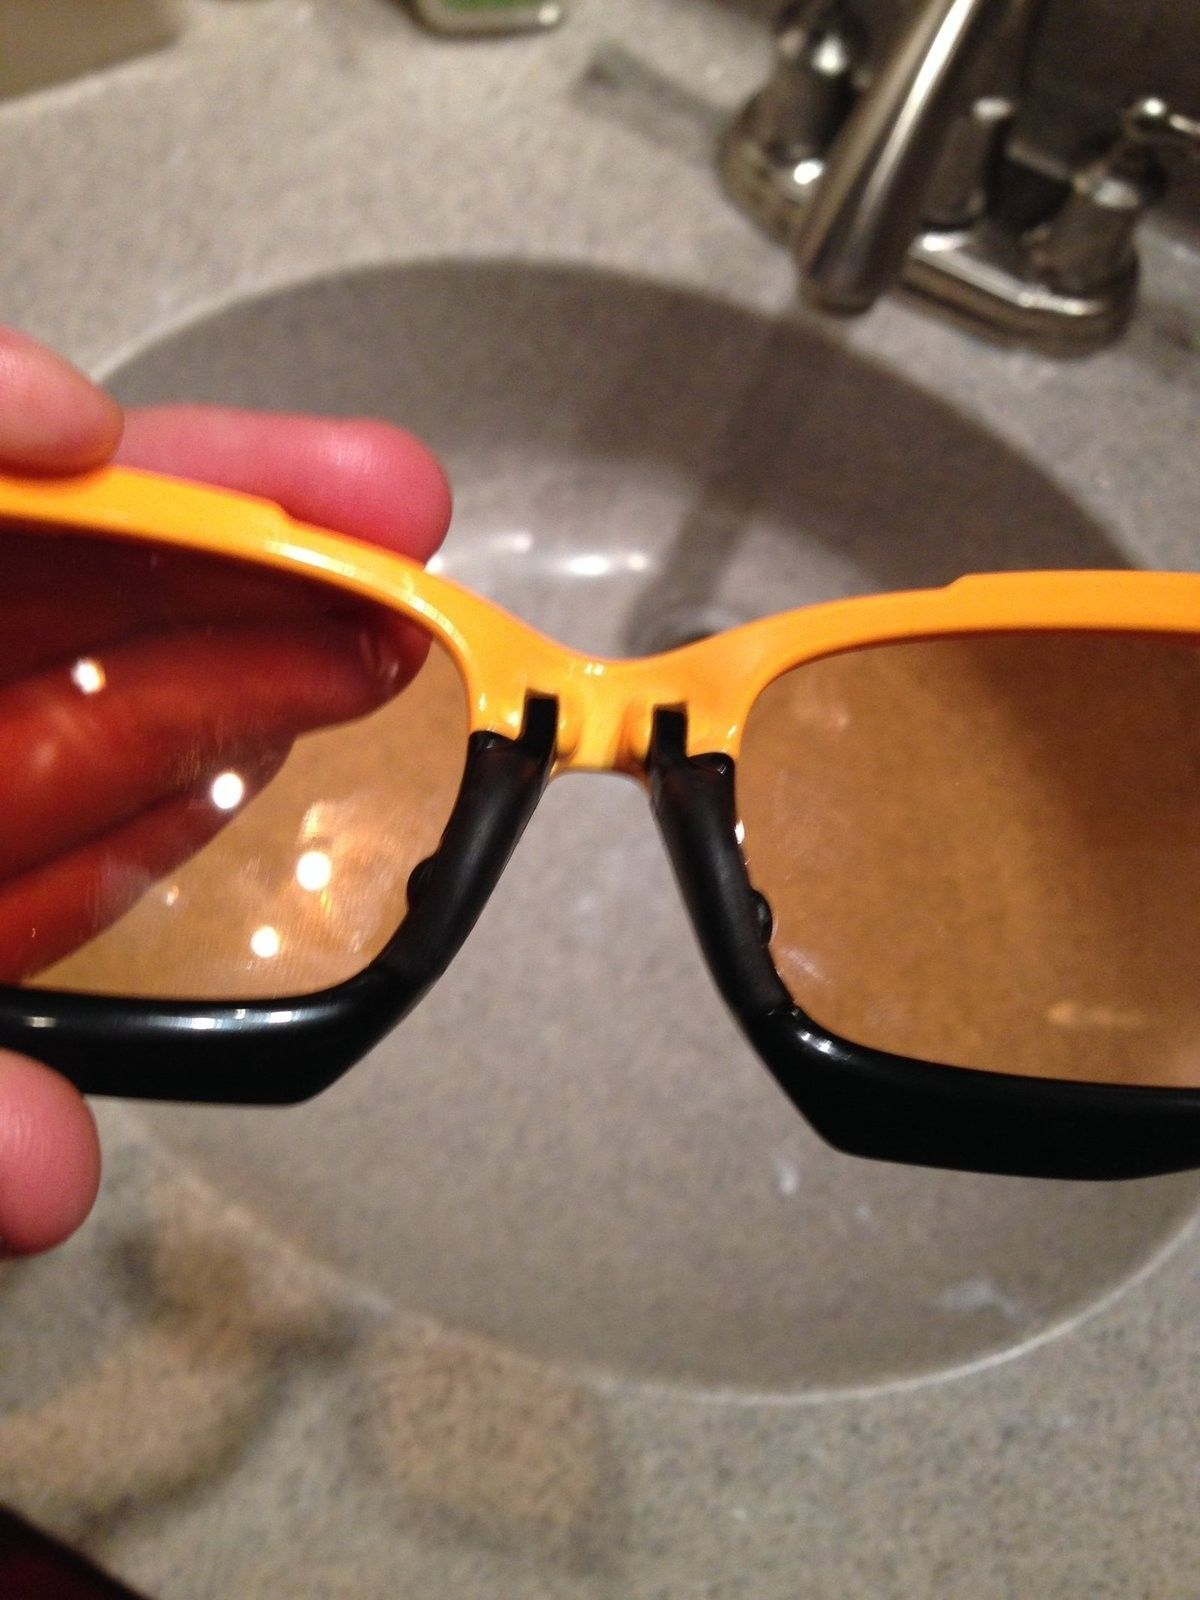 Atomic Orange Jawbone - Real vs. Fake? - image2.JPG